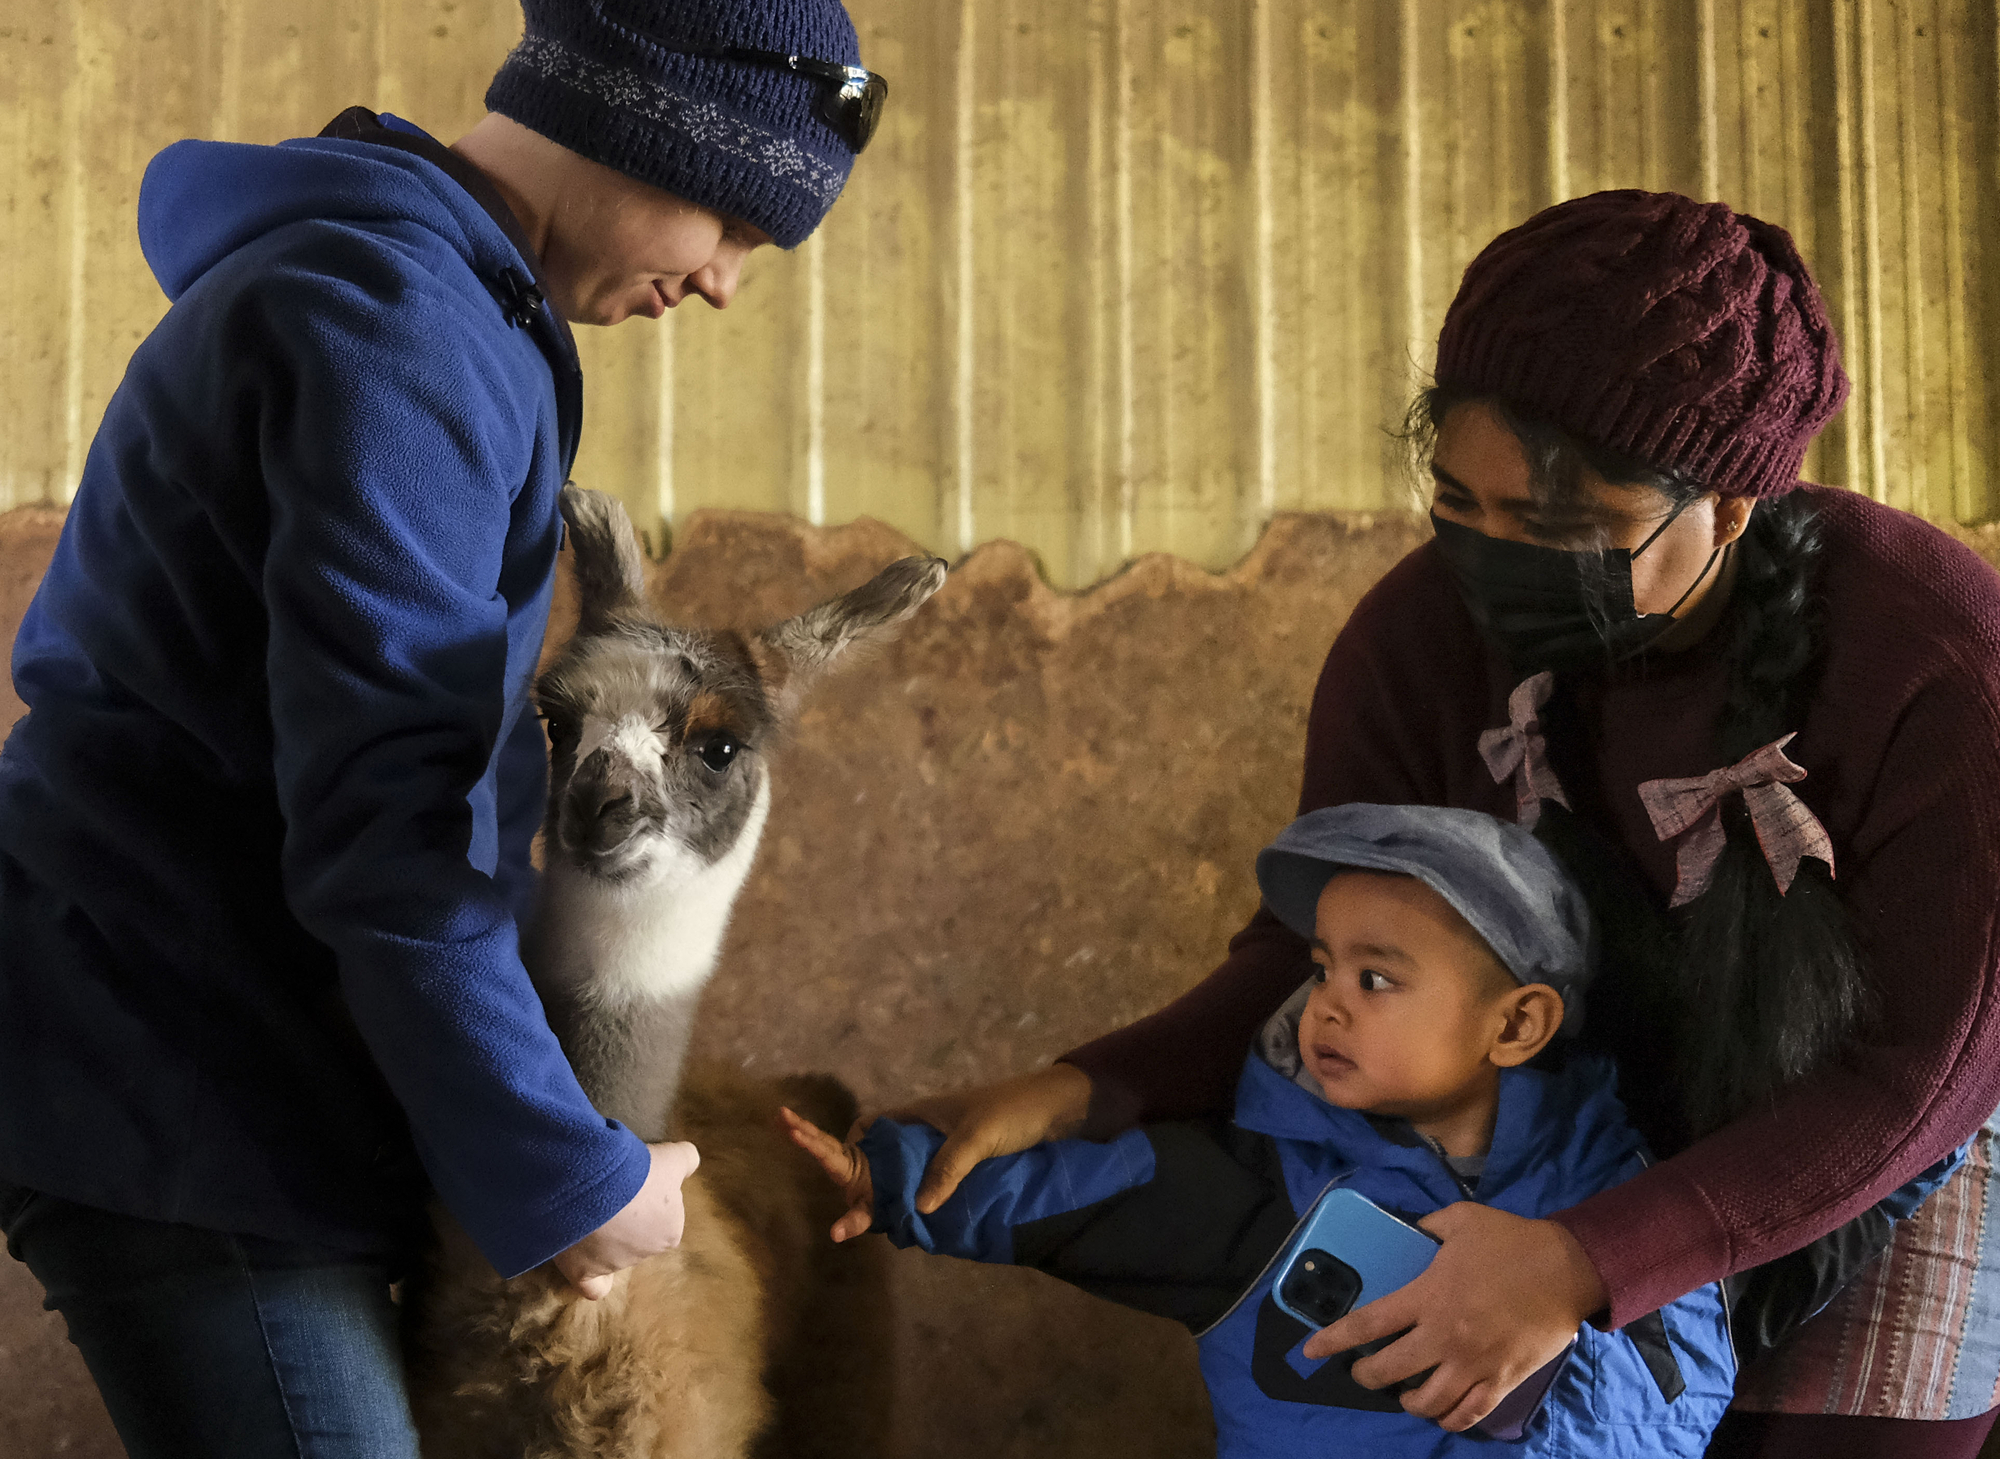 Phyo Wai, of Elk River, held her 2-year old son, Andrew Maung, as he patted a one-day old cria, or baby llama, which was being held by Margaret Thom.